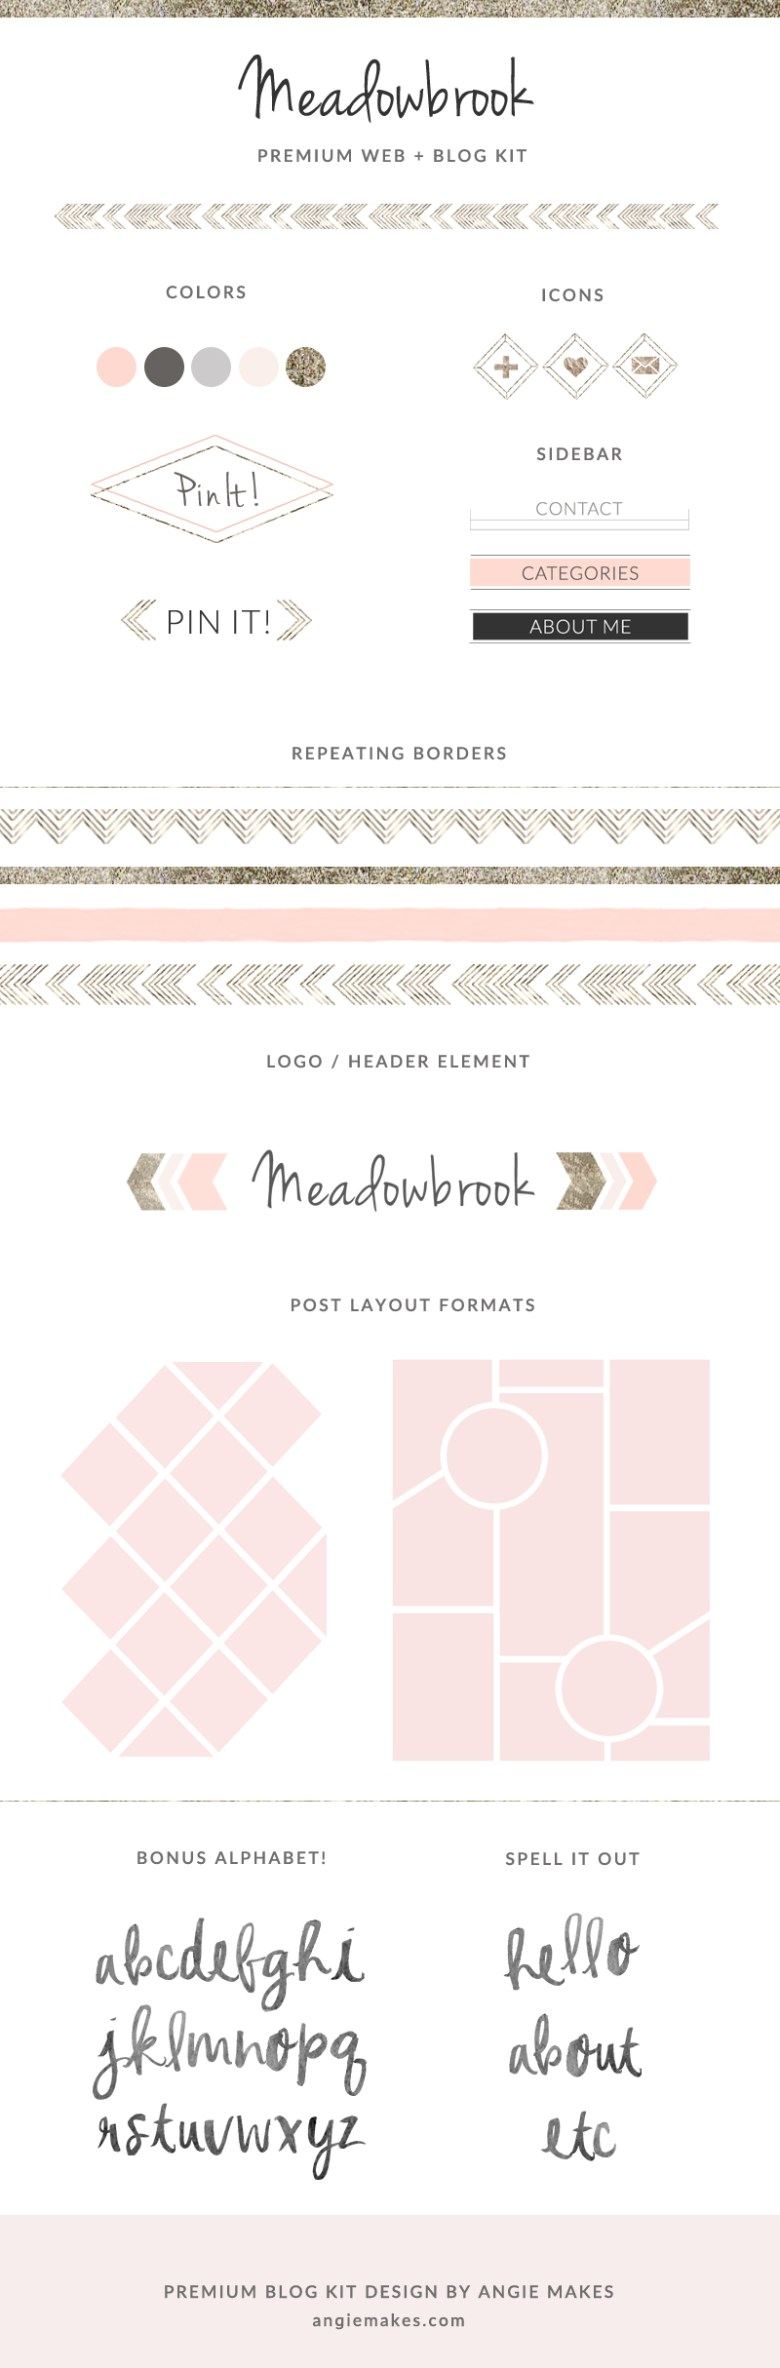 Modern Premade Blog Kit By Angie Makes. Spruce up Your Blog In No Time With This Blog Design Graphic Set!